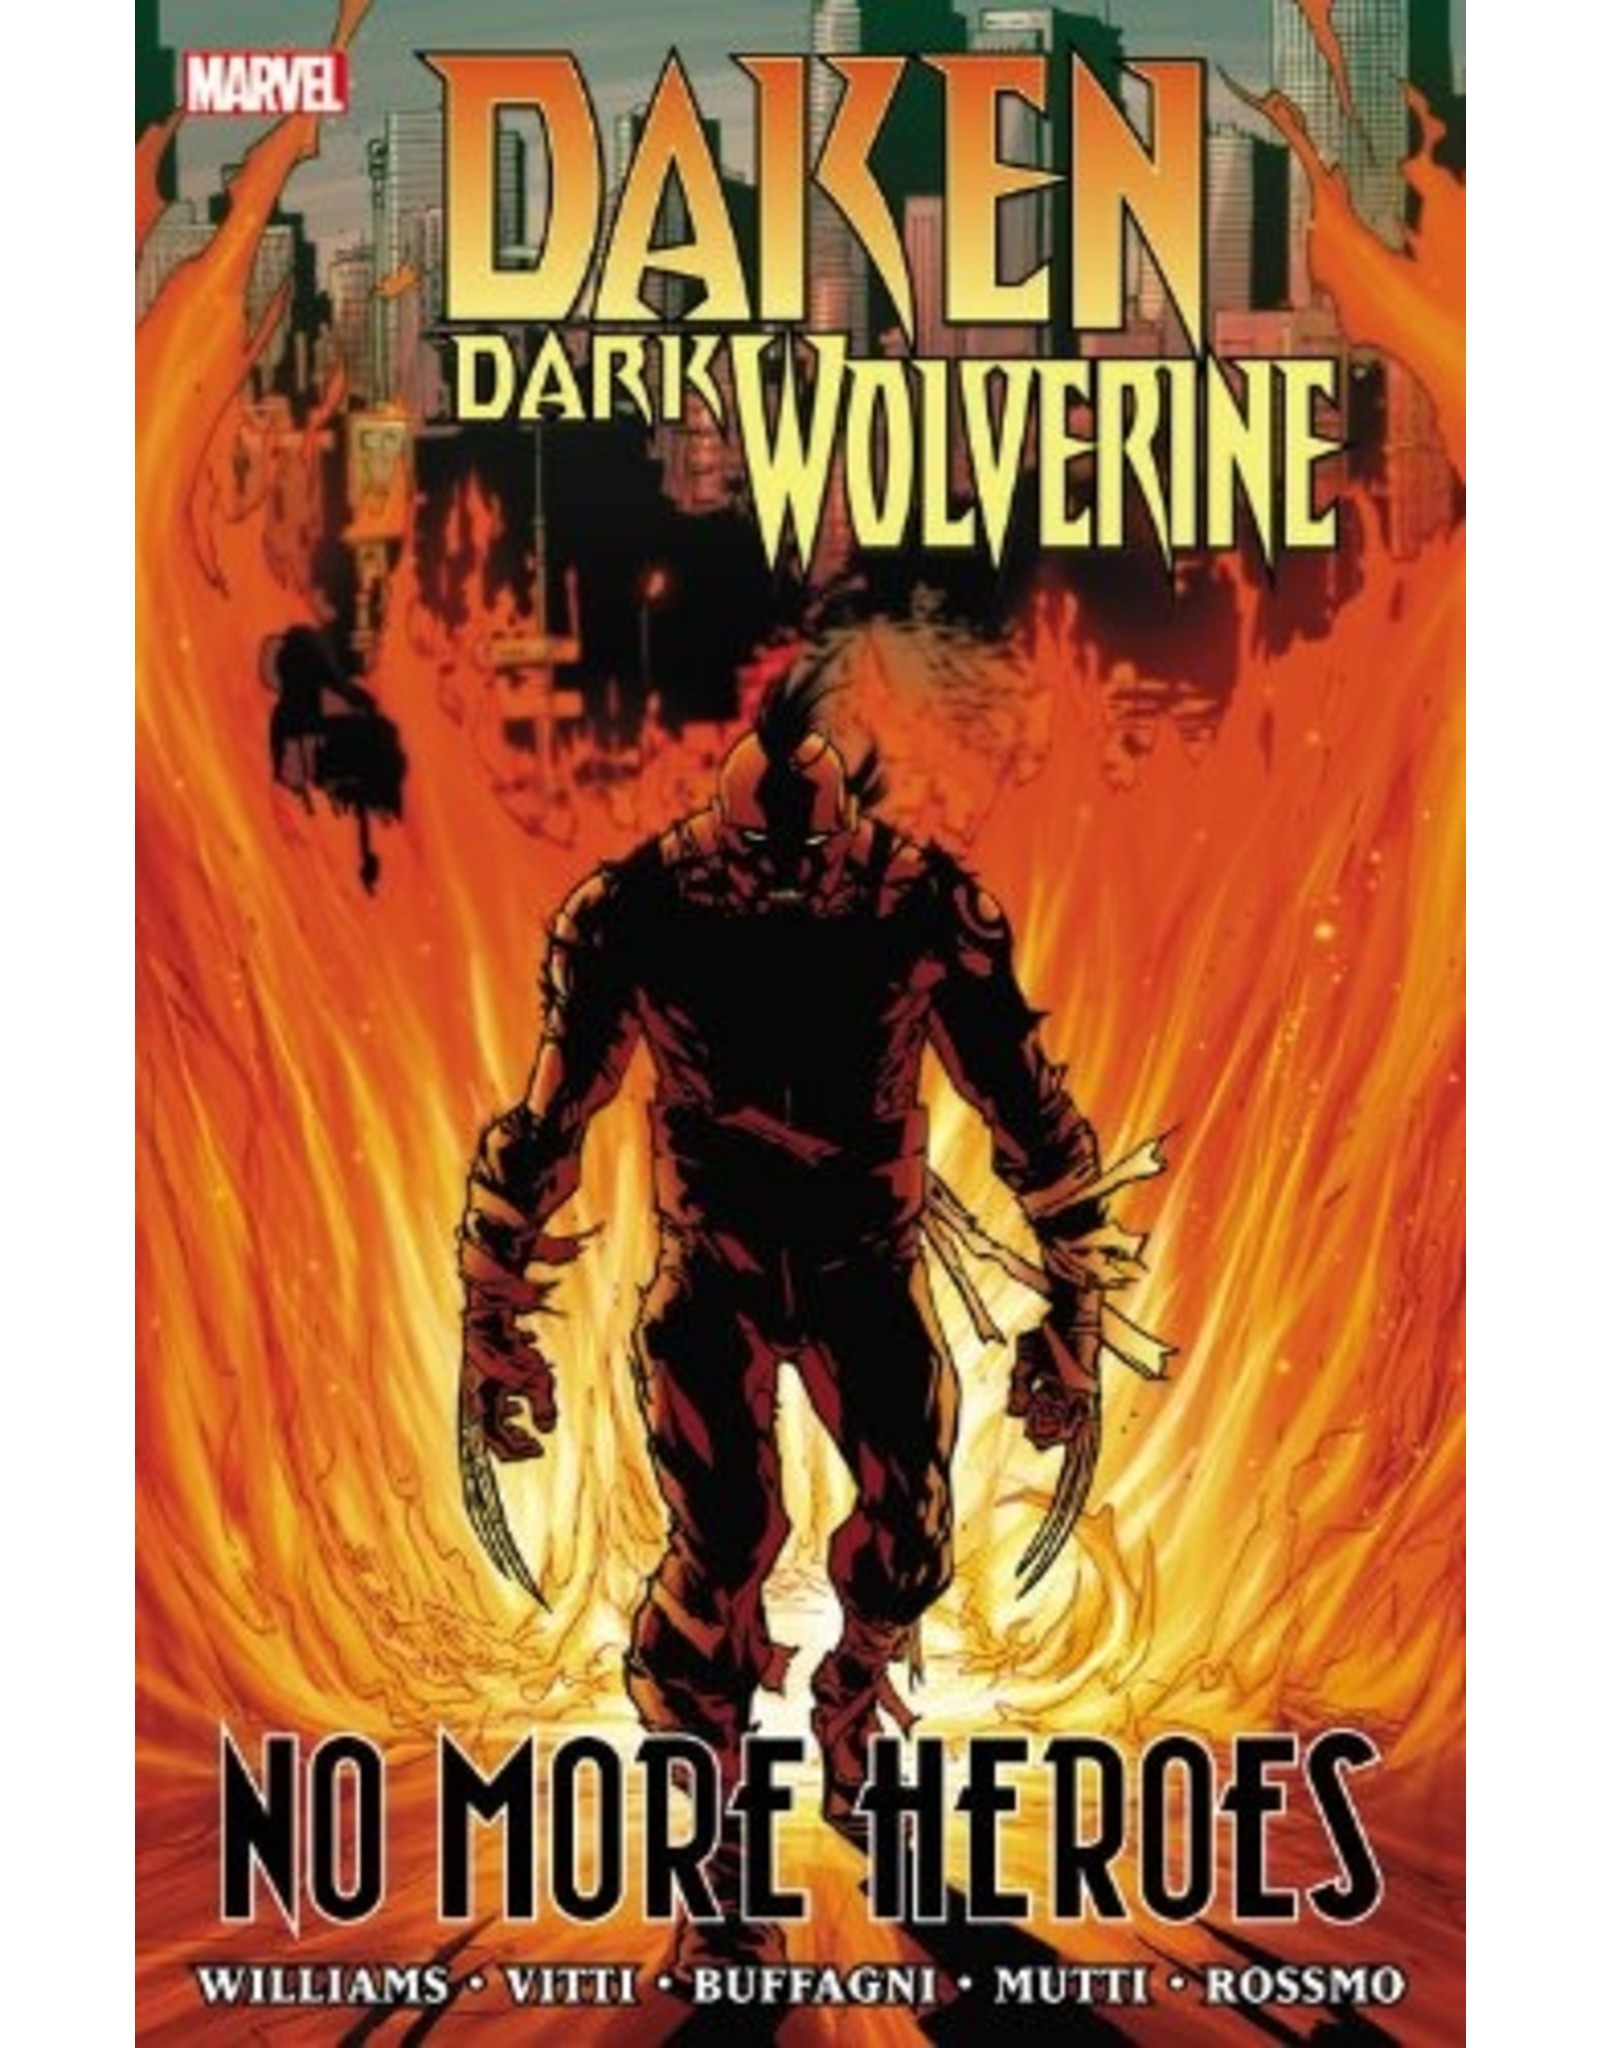 MARVEL COMICS DAKEN DARK WOLVERINE PREM HC NO MORE HEROES